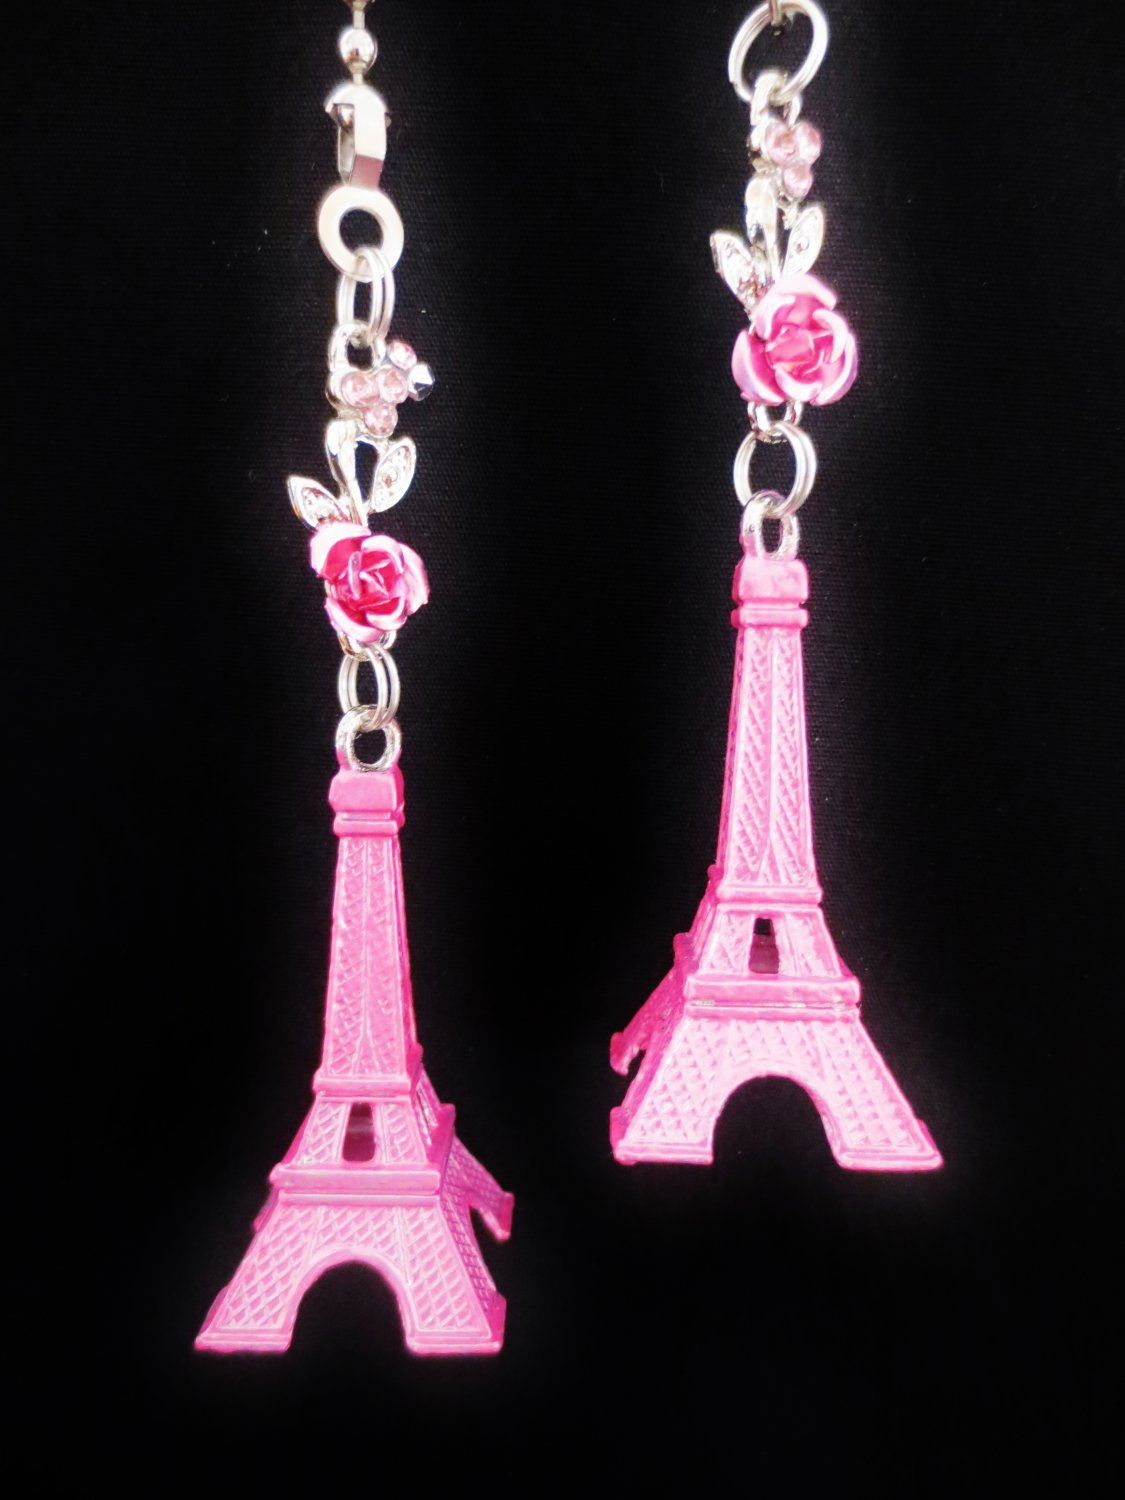 Eiffel Tower Paris Landmark Pink Ceiling Fan Light Pull Chain